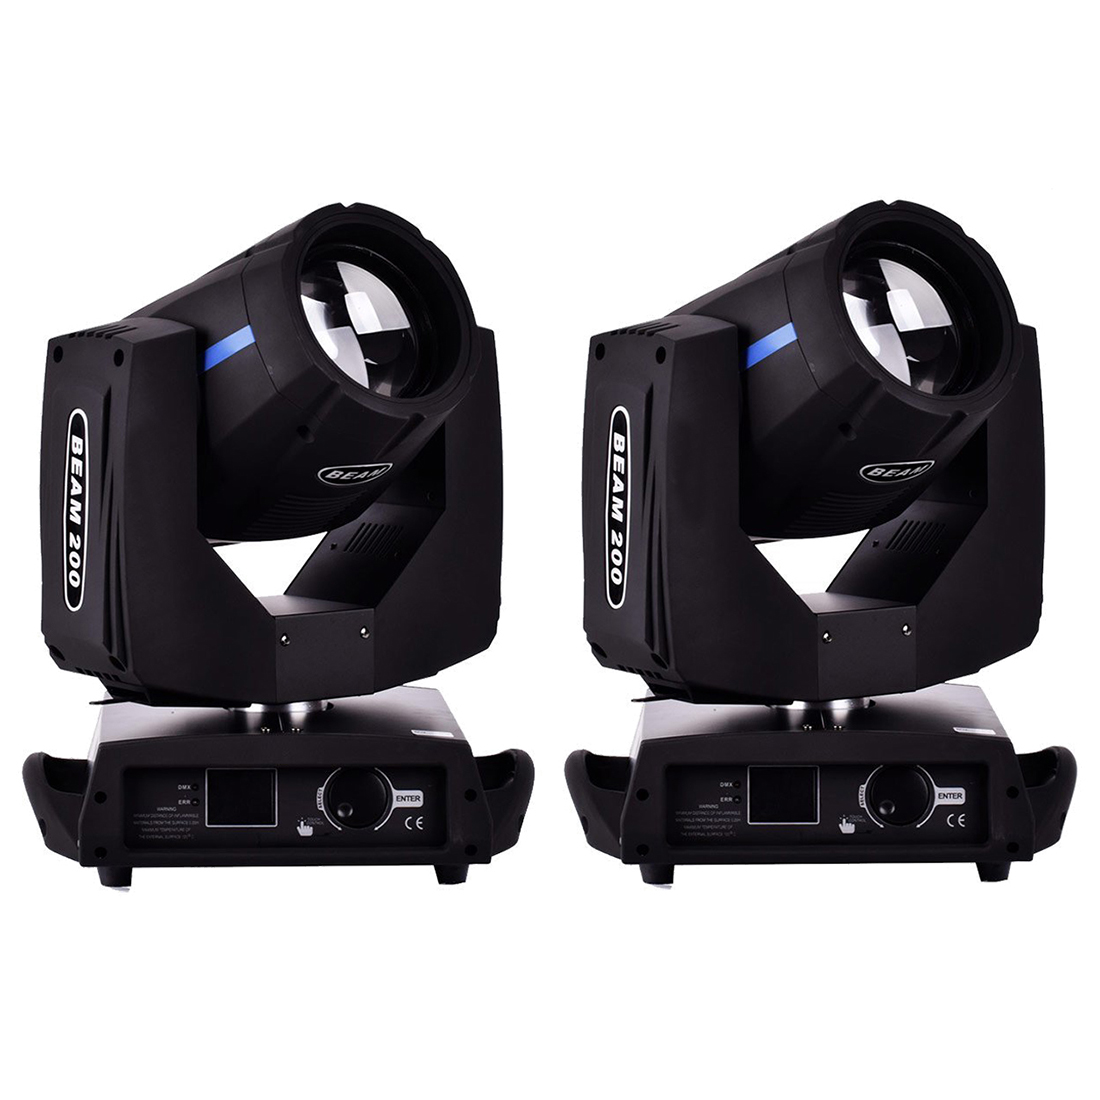 2pcs 200W DMX512 16CH LED Beam Moving Head Light Stage Lighting Effect Stage Light 2pcs 200W DMX512 16CH LED Beam Moving Head Light Stage Lighting Effect Stage Light